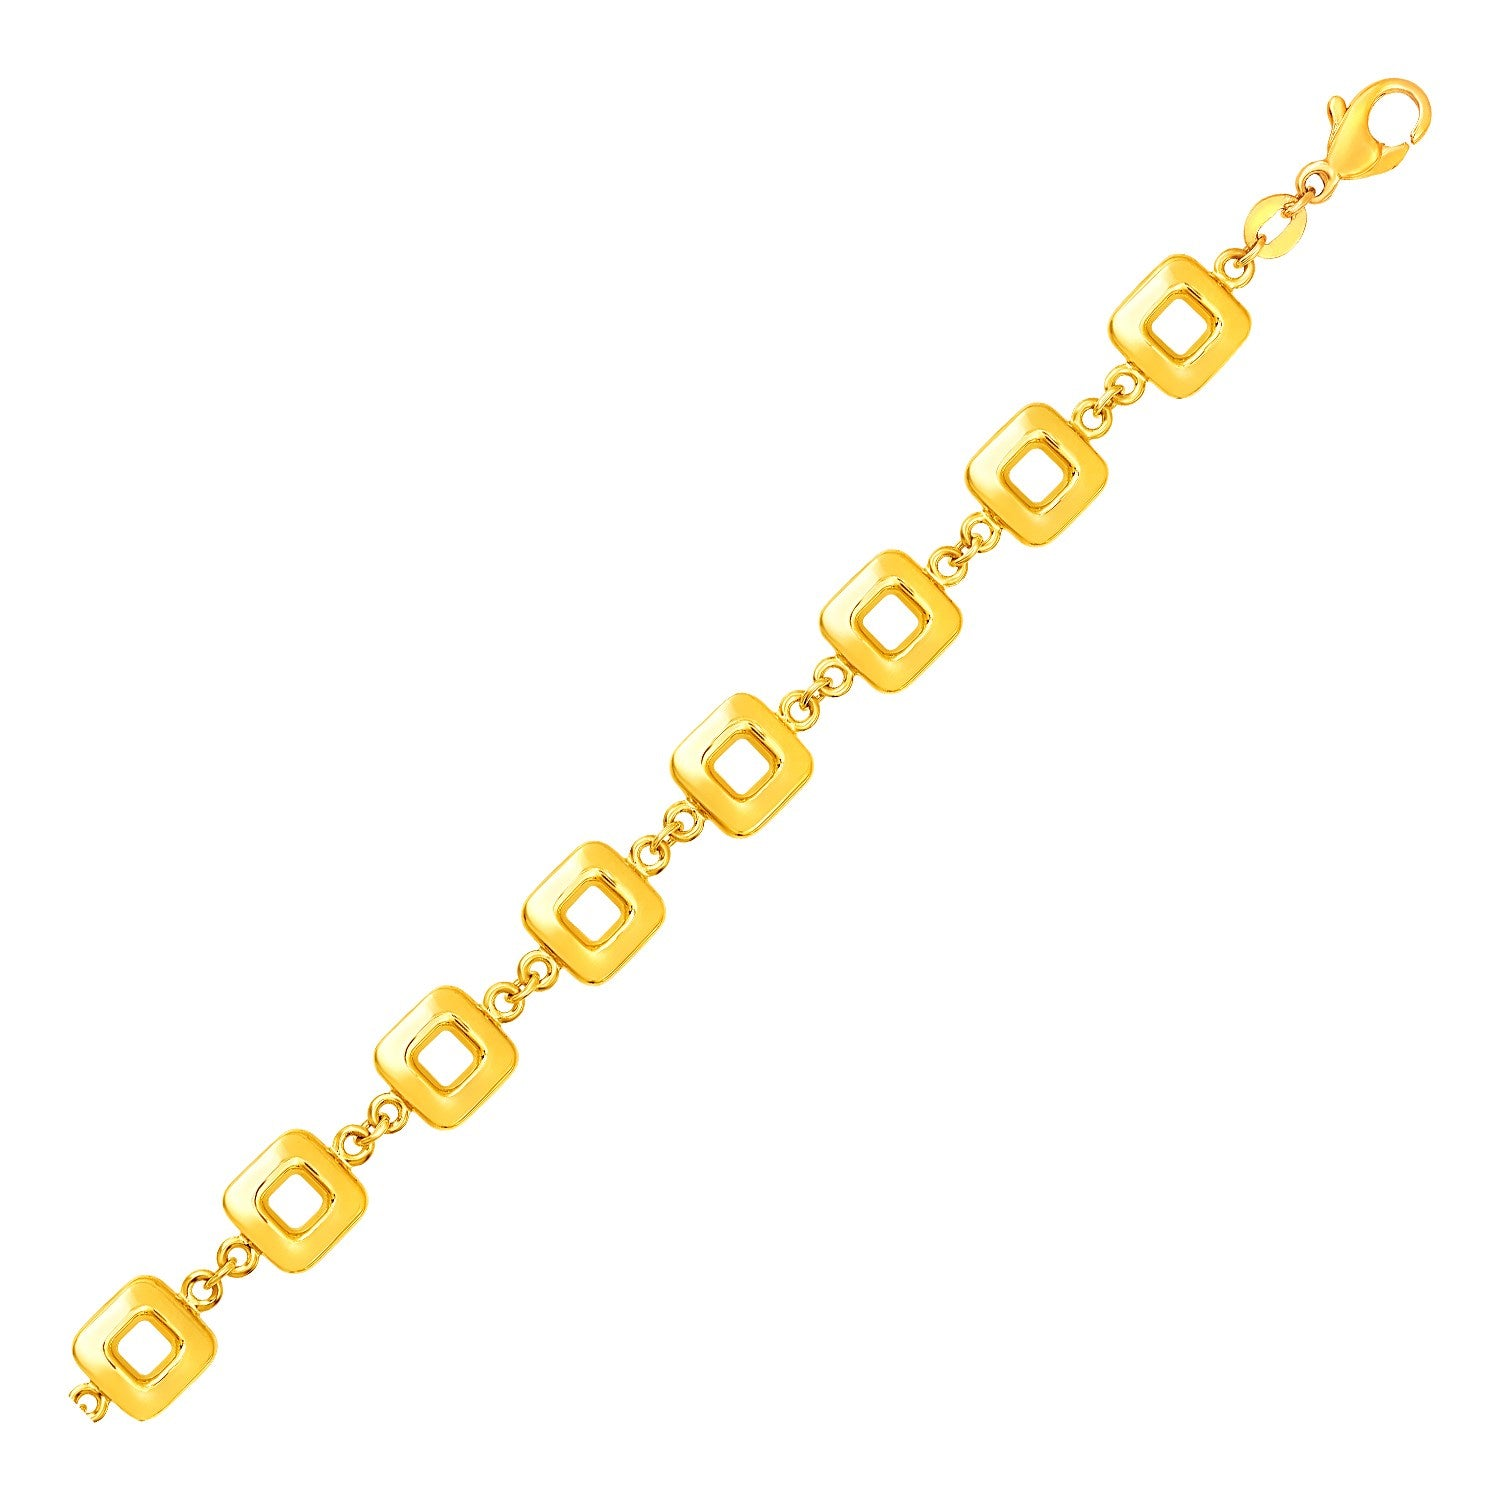 Bracelet with Shiny Square Links in 14k Yellow Gold